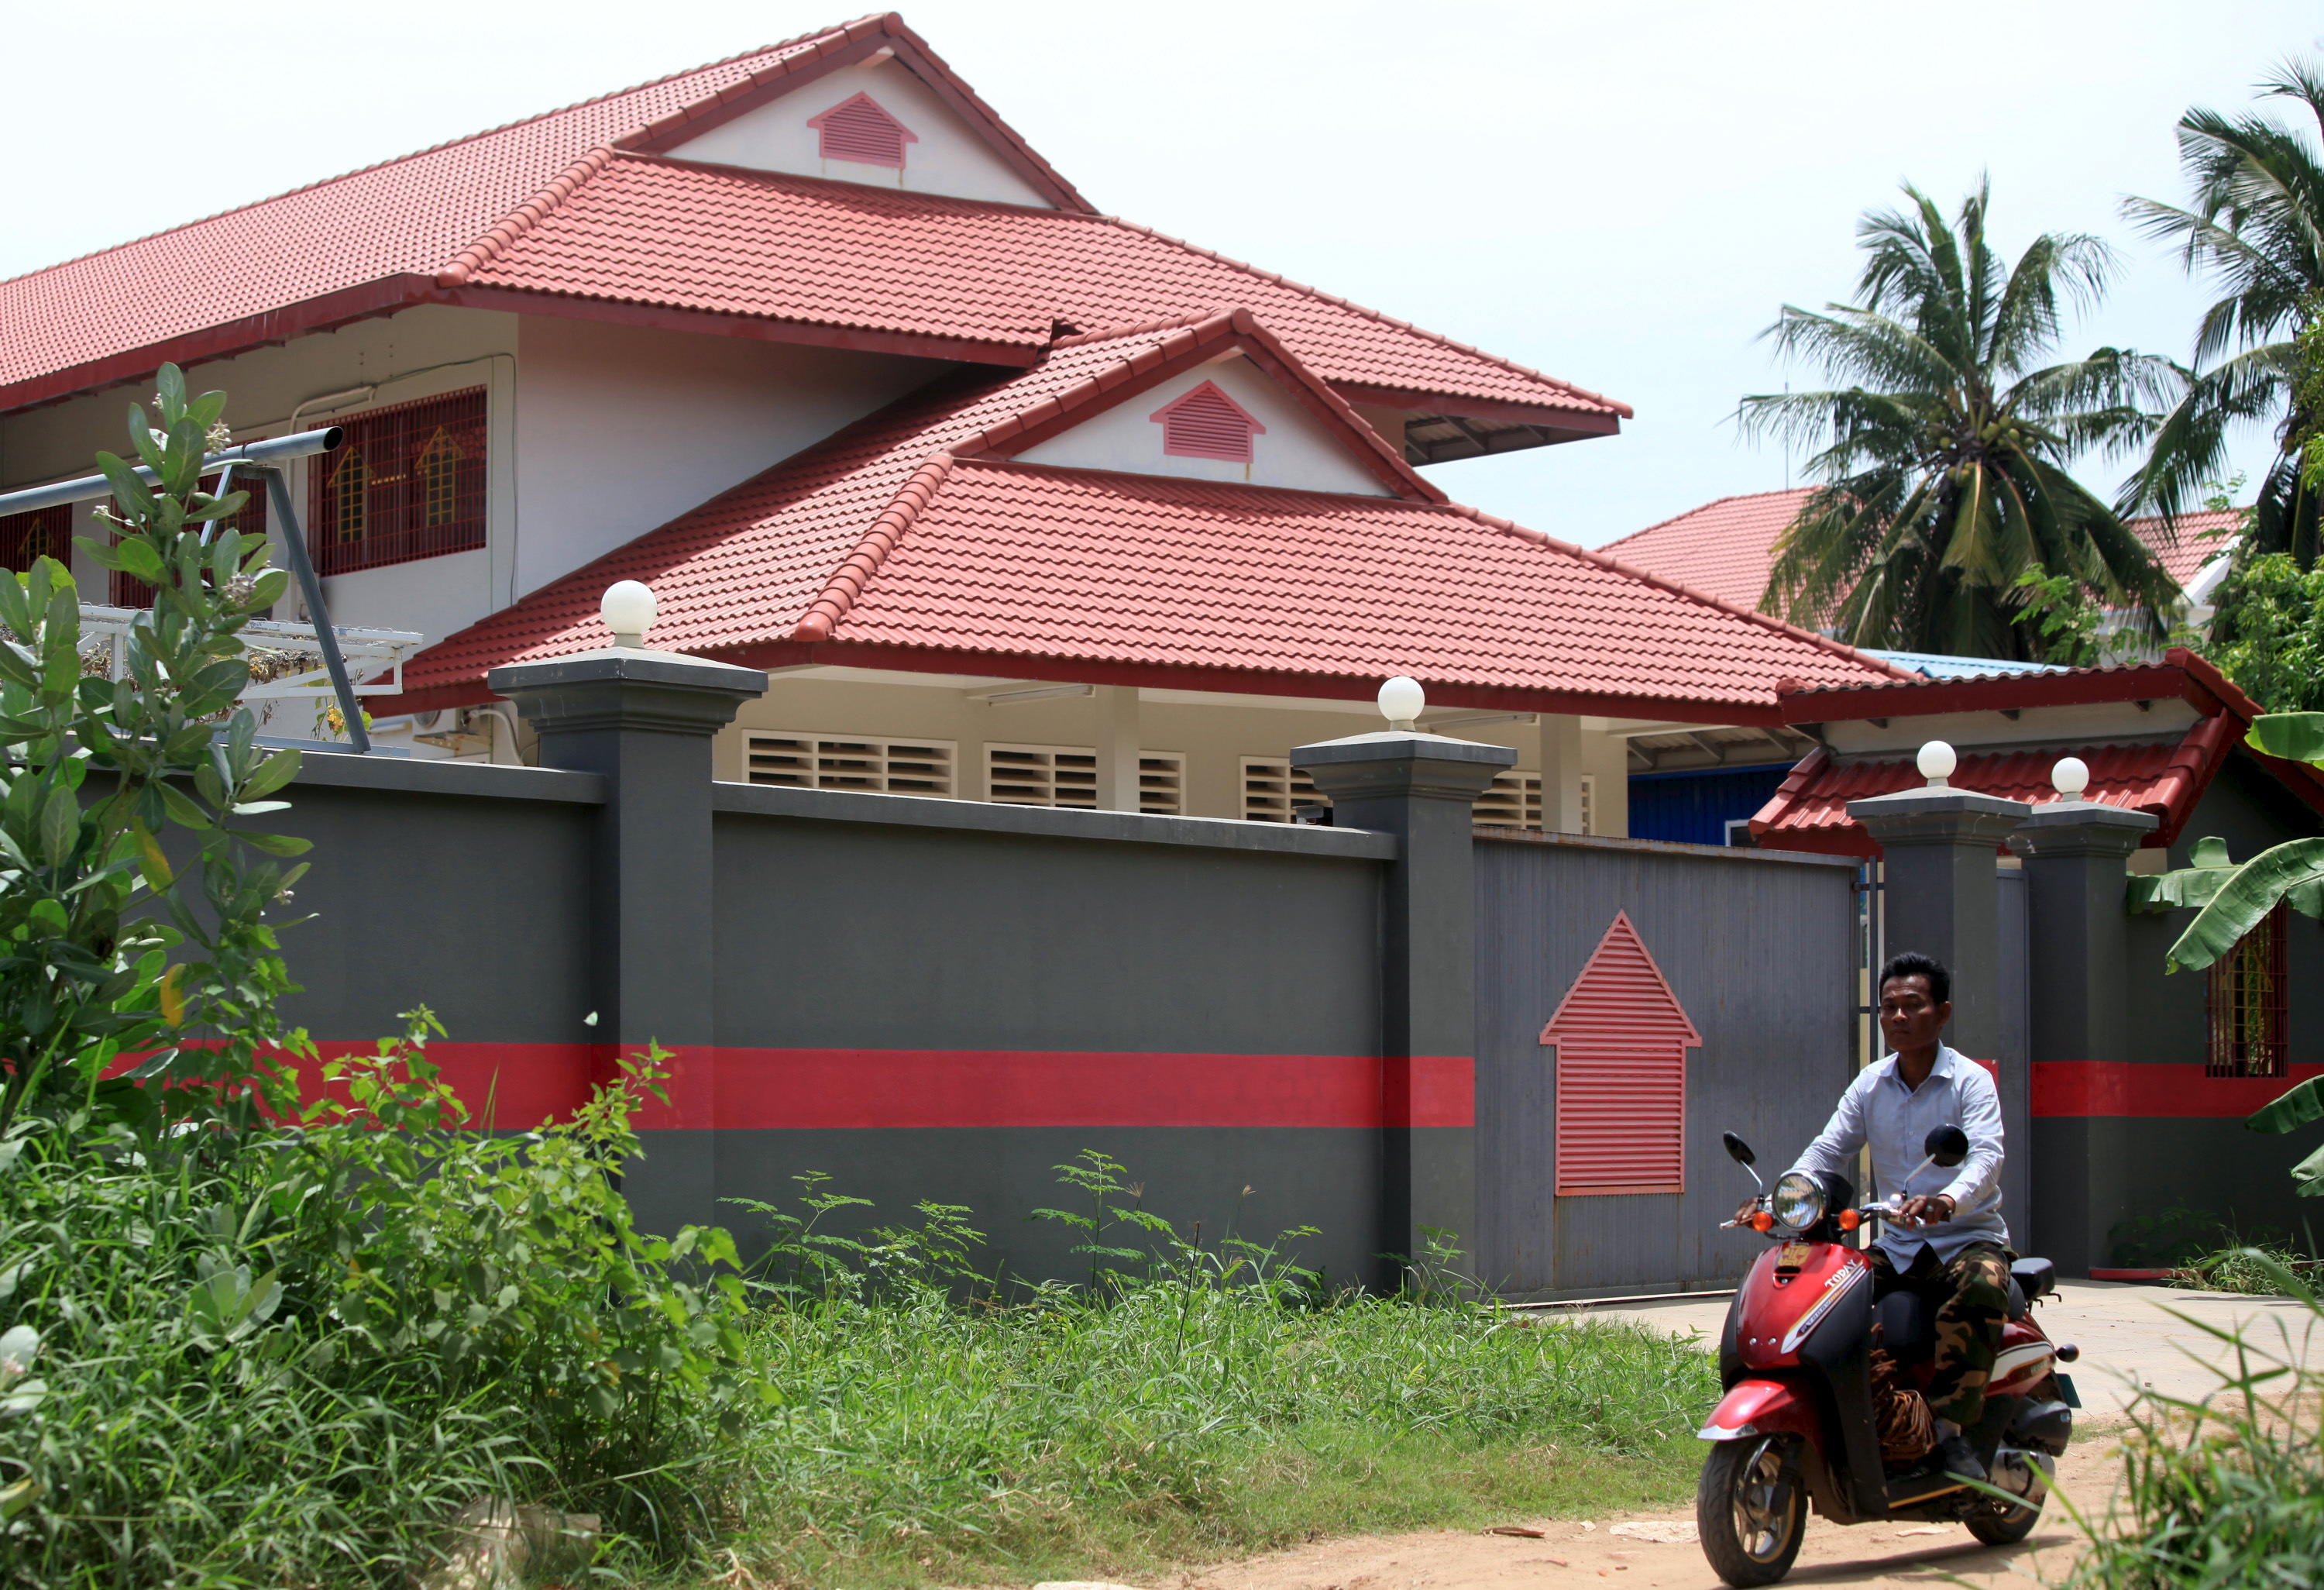 A man rides a motorcycle past a house that is used to temporarily house asylum seekers sent from a South Pacific detention centre, in Phnom Penh, Cambodia August 31, 2015.